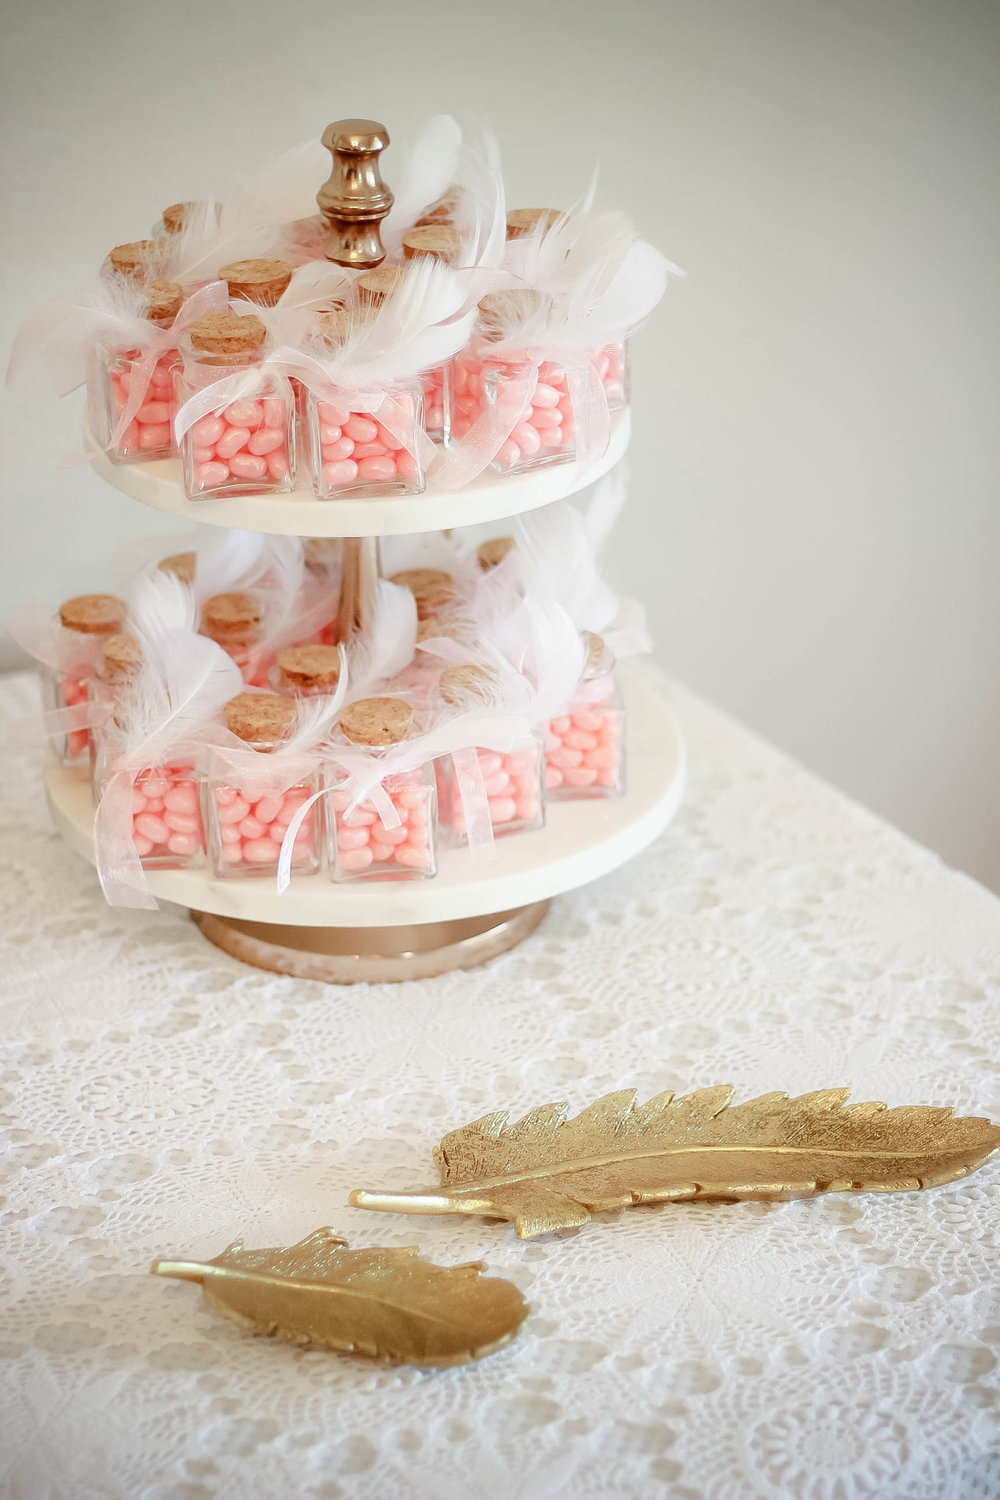 Feather Details from Hobby Lobby and Favors inspired by Pinterest